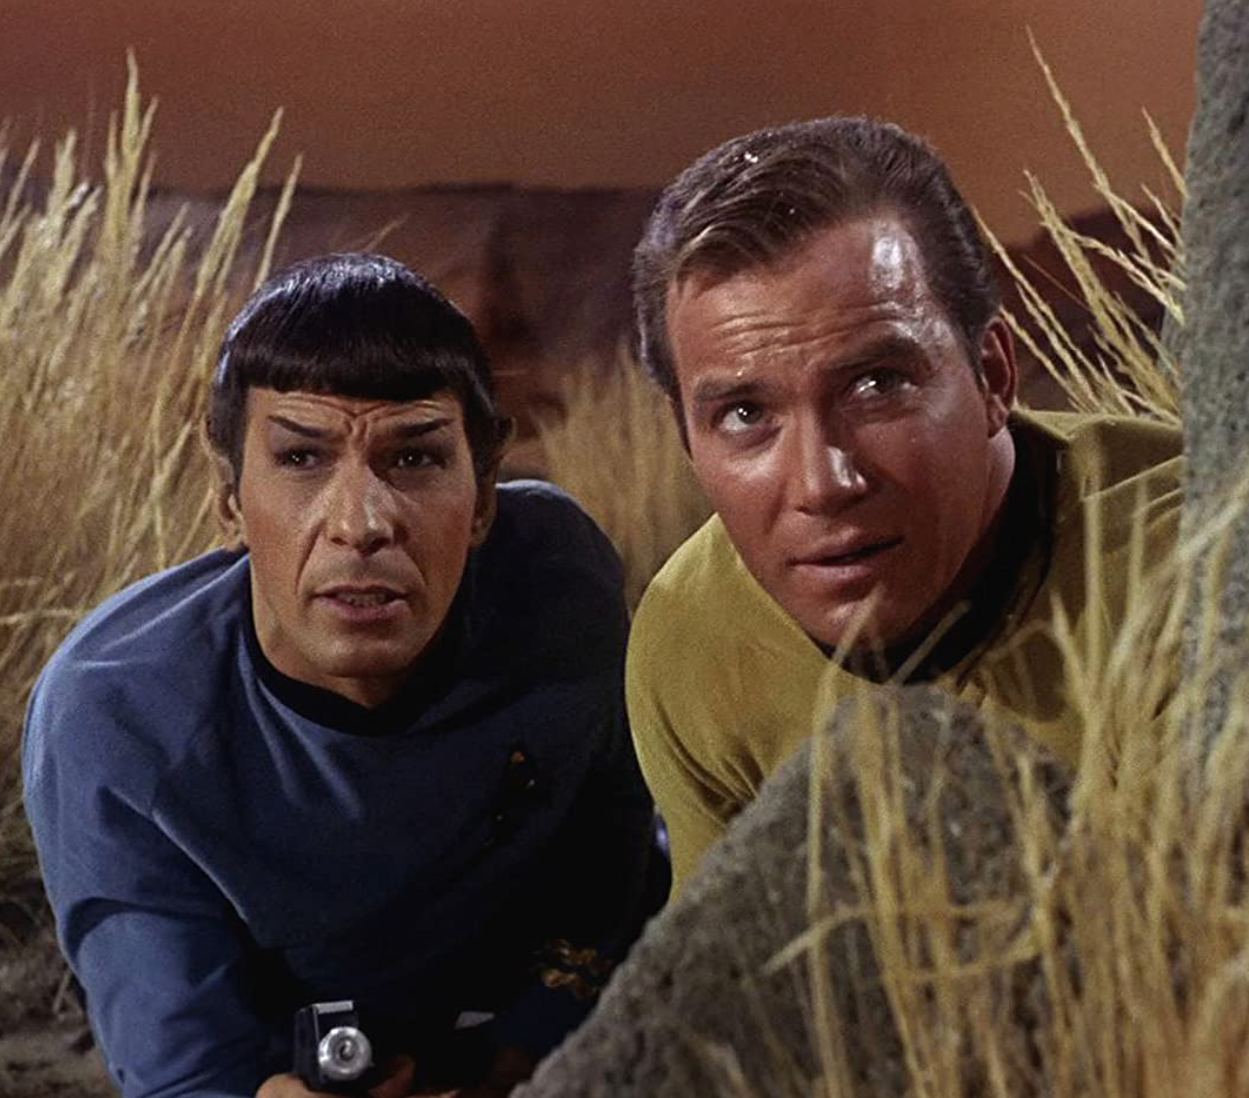 Screen Shot 2021 04 15 at 8.06.14 am e1618470422204 21 Facts You Probably Never Knew About William Shatner